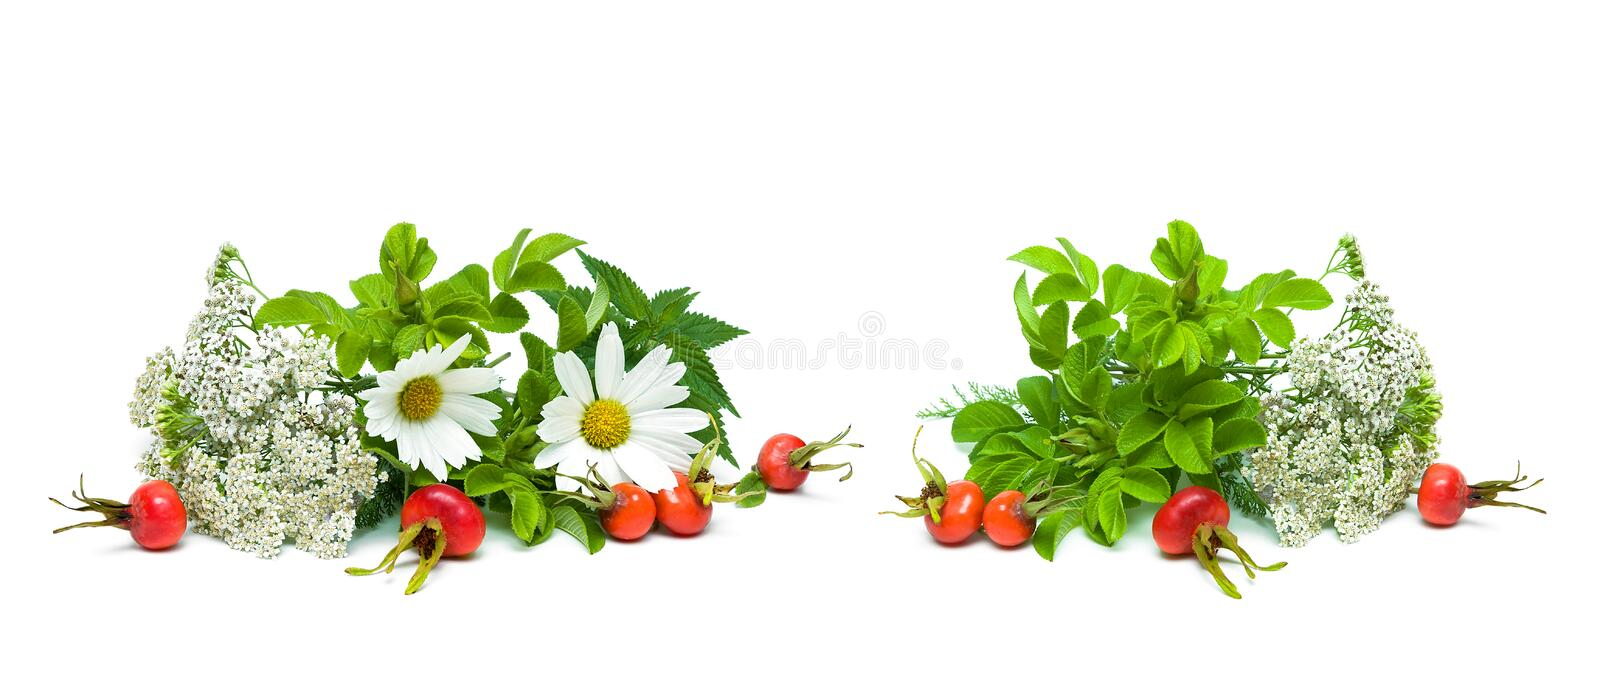 Herbs and berries of wild rose isolated on white background royalty free stock images